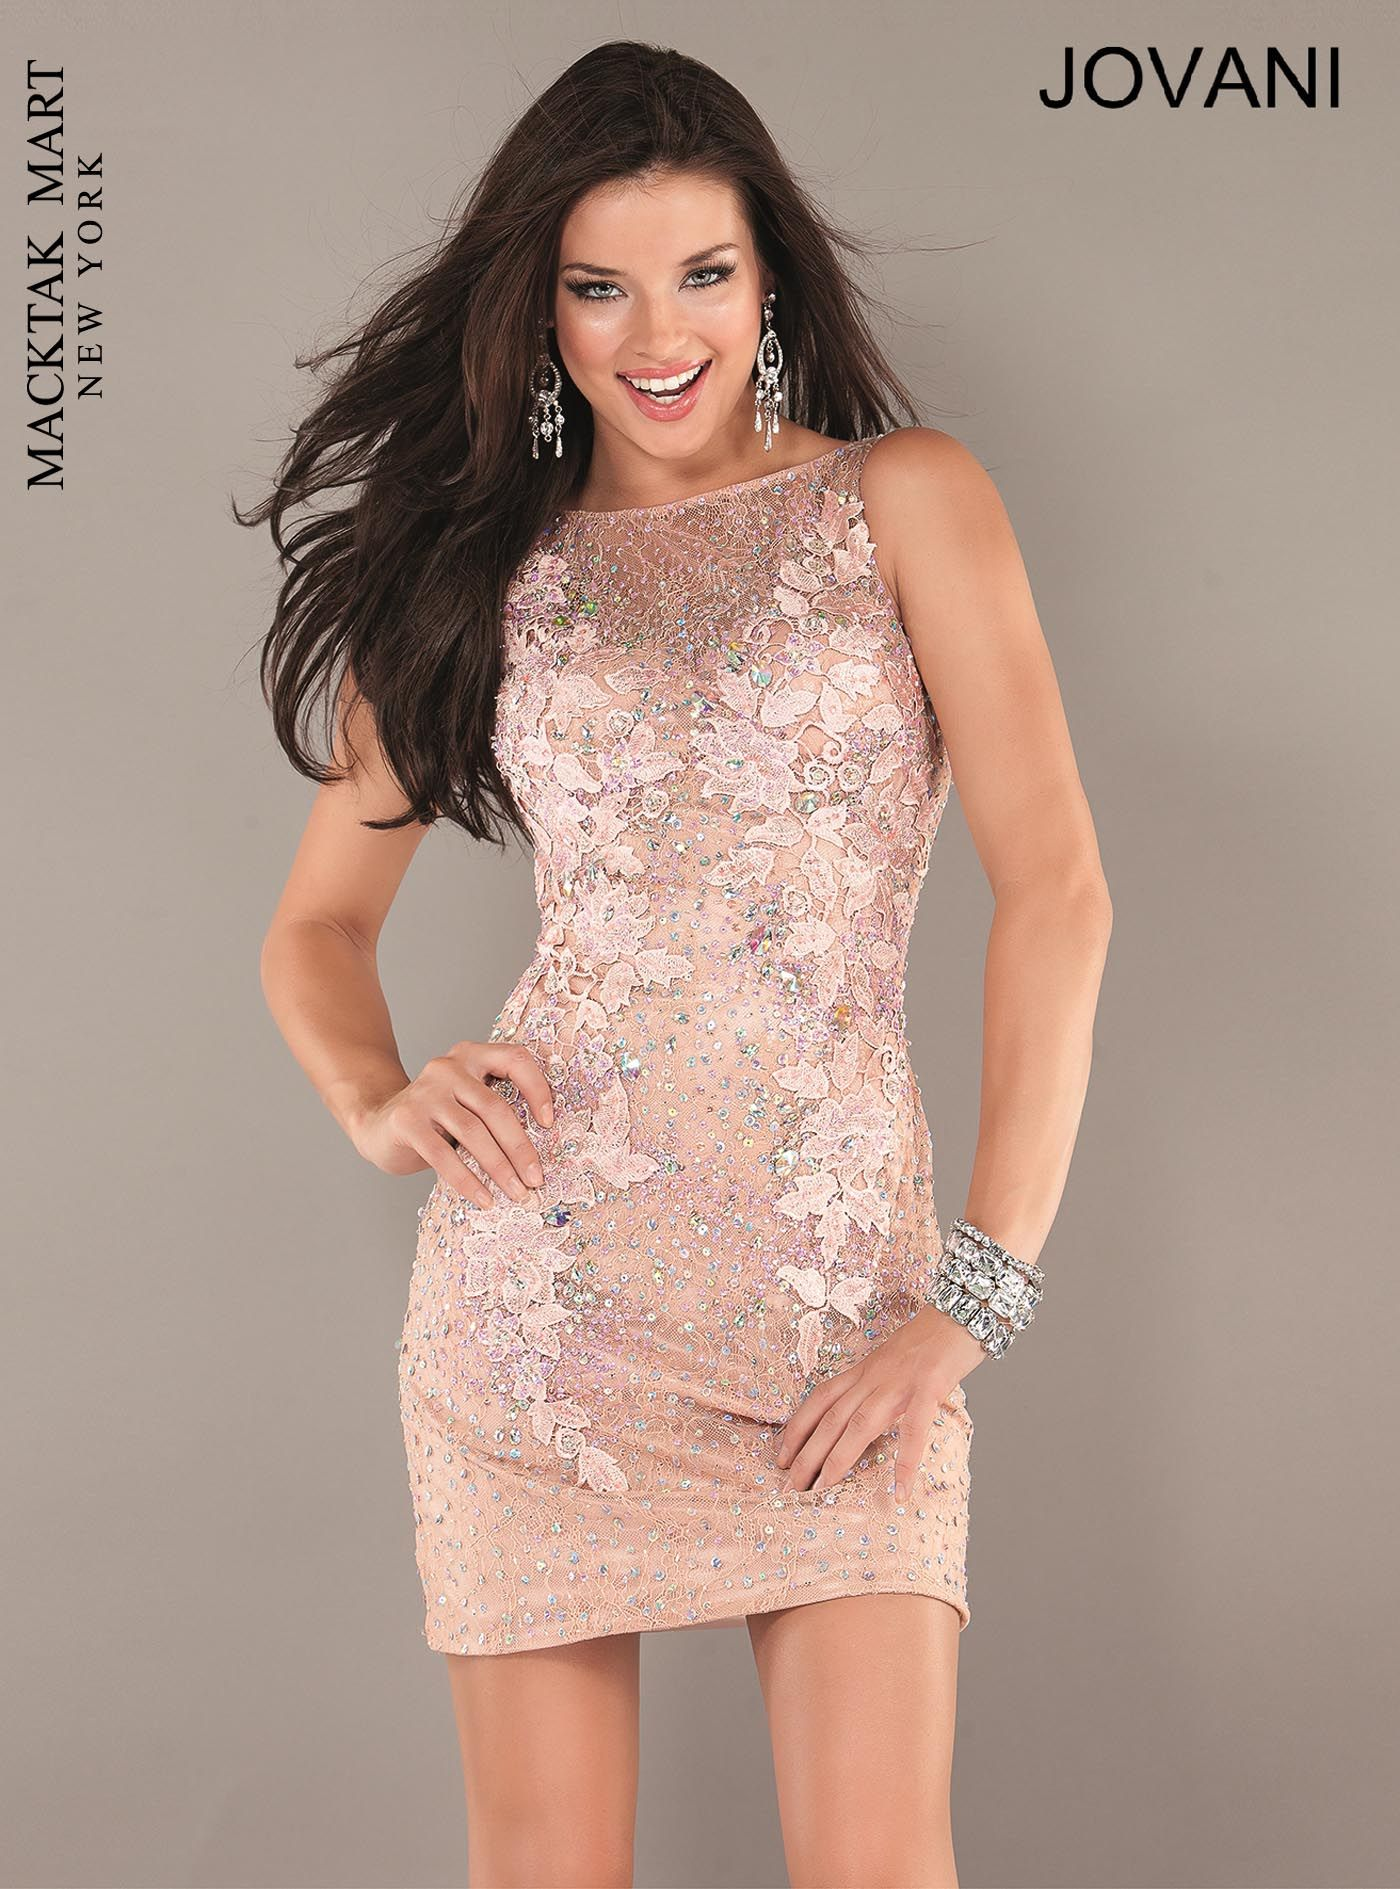 Jovani 816 Dress! http://macktakmart.com/jovani-prom-dresses-816 ...